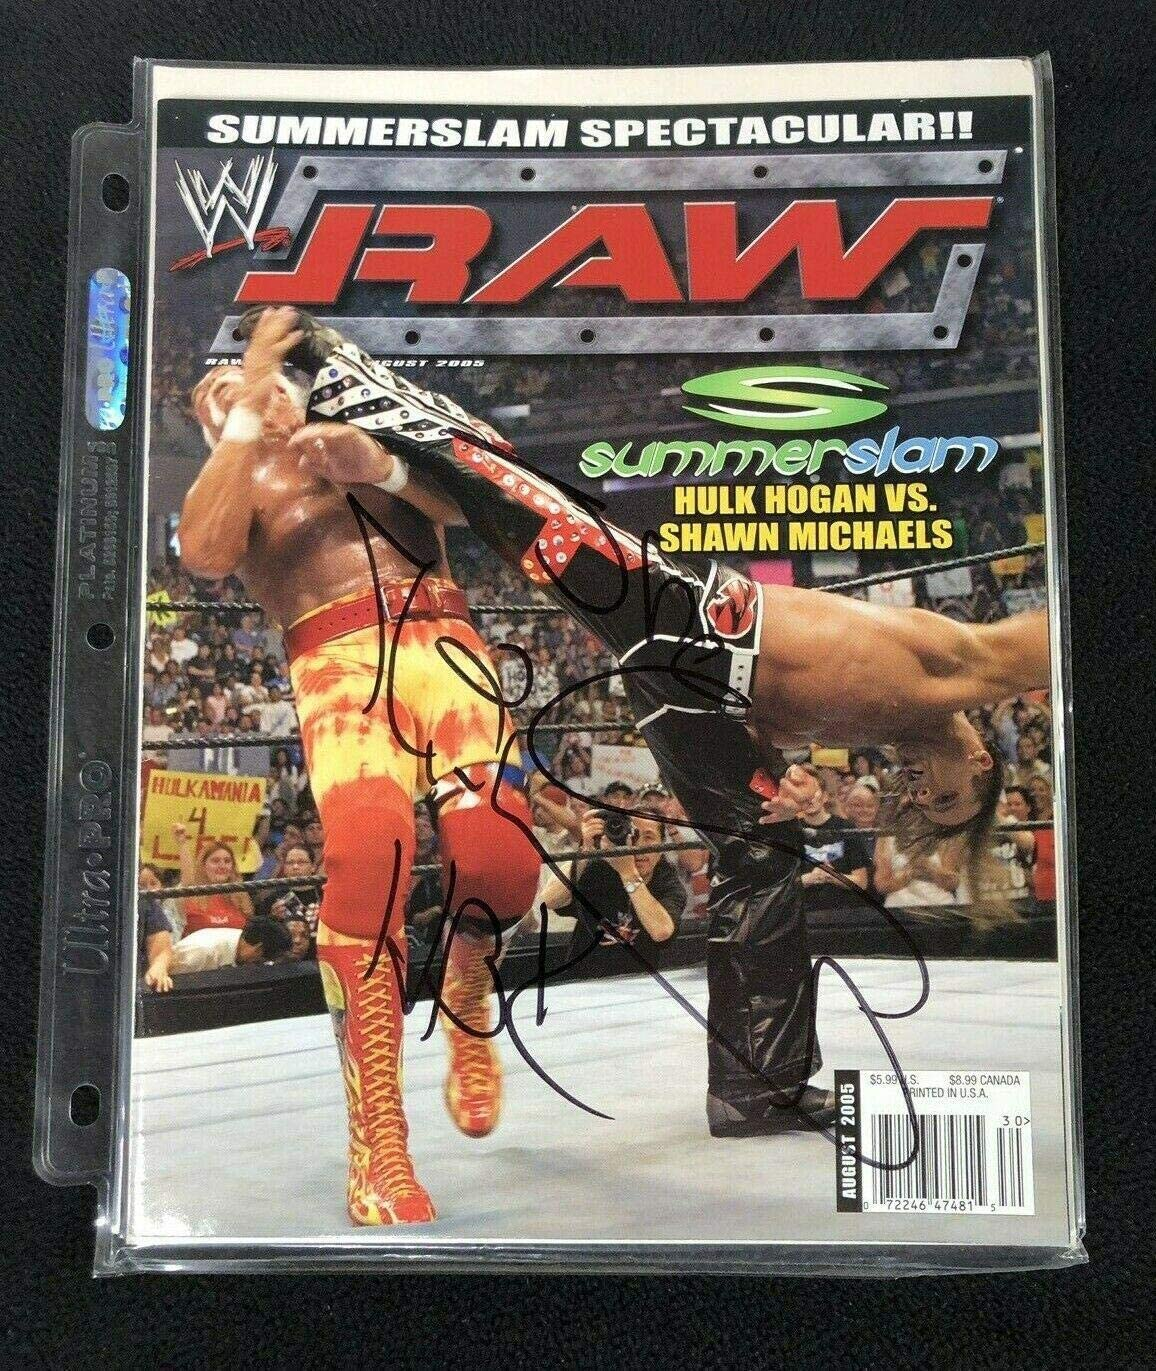 Shawn Michaels Signed Wwe Raw Magazine August 2005 - Autographed Wrestling Miscellaneous Items